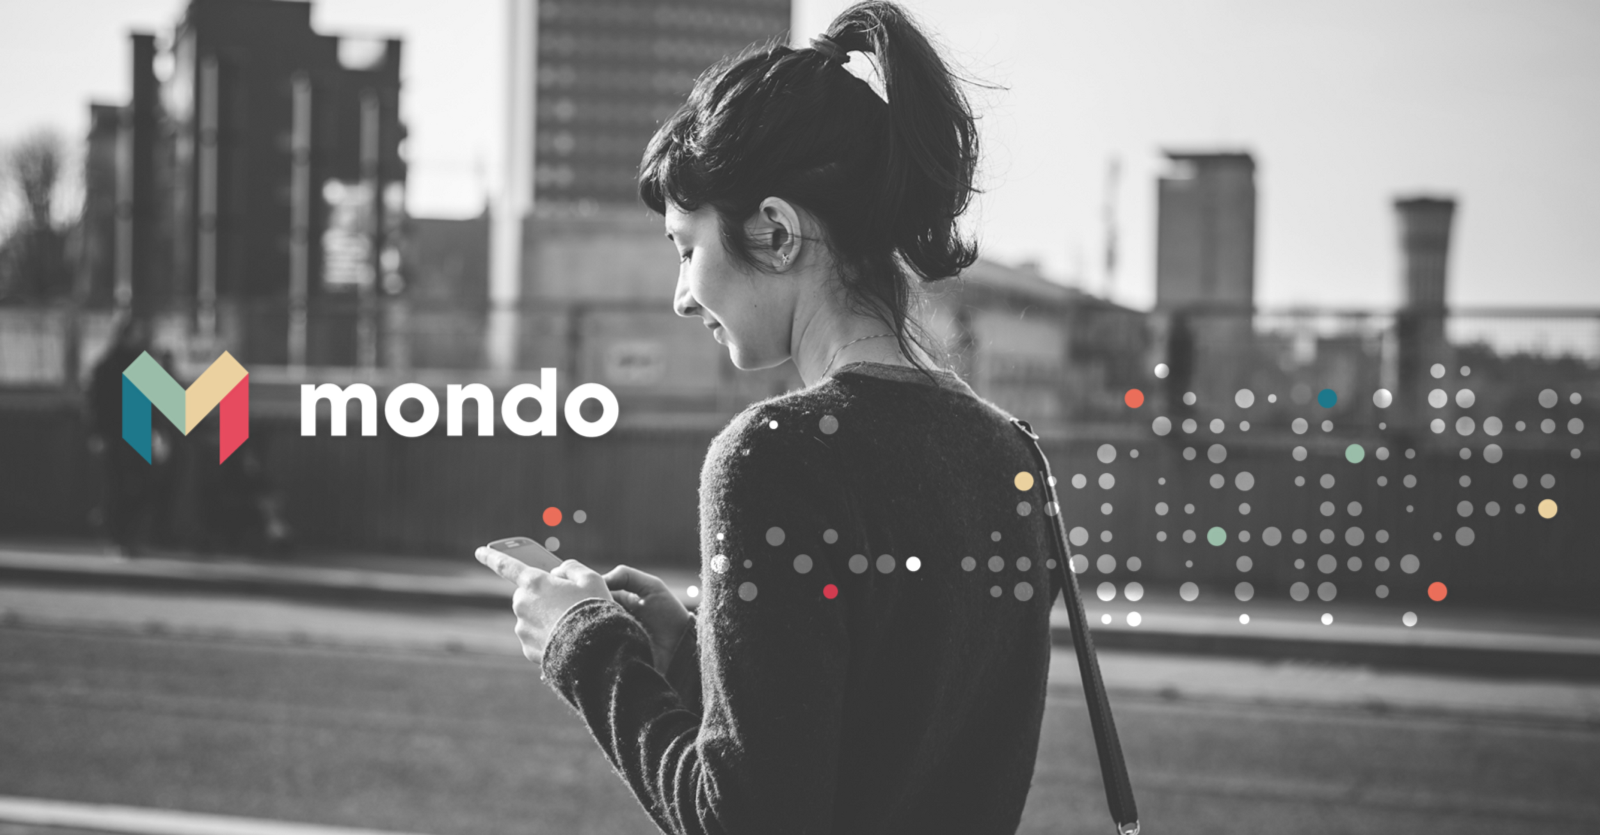 First impressions of Mondo, the full stack smart bank